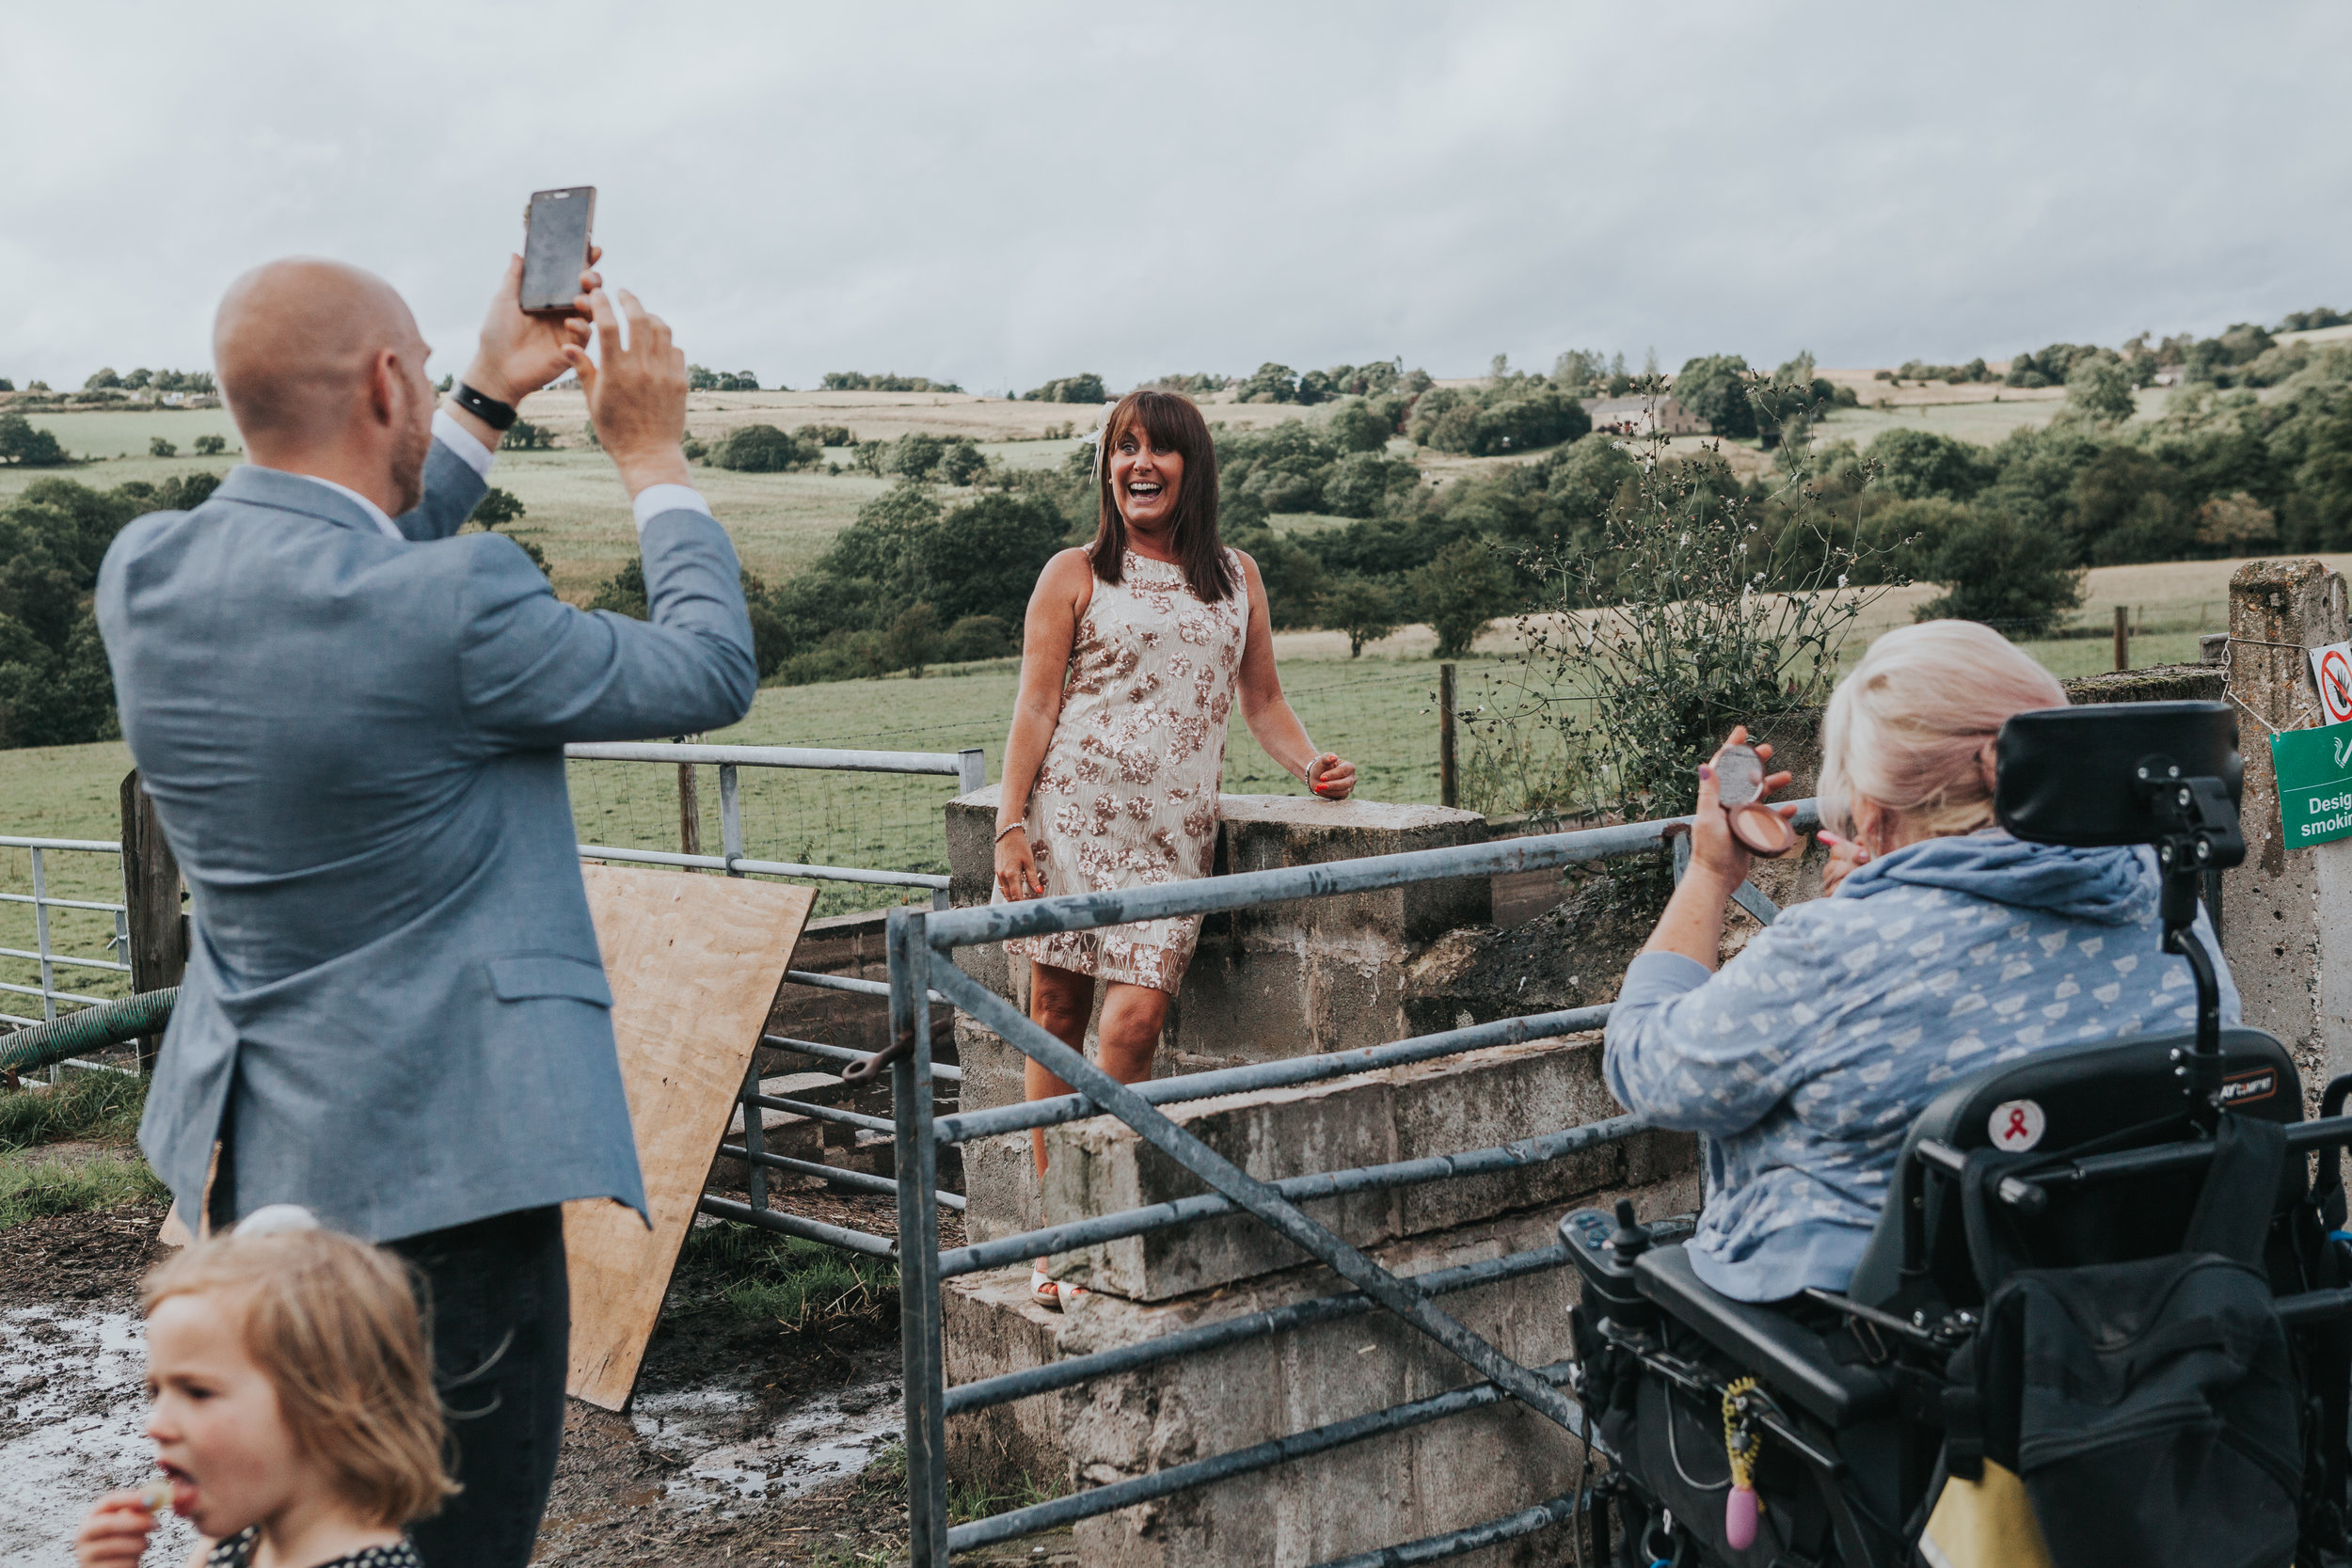 A typical documentary wedding photograph of a guest posing for a photograph taken by her friends phone, while a lady in a wheel chair puts on make up and a little girl walks past eating crisps.